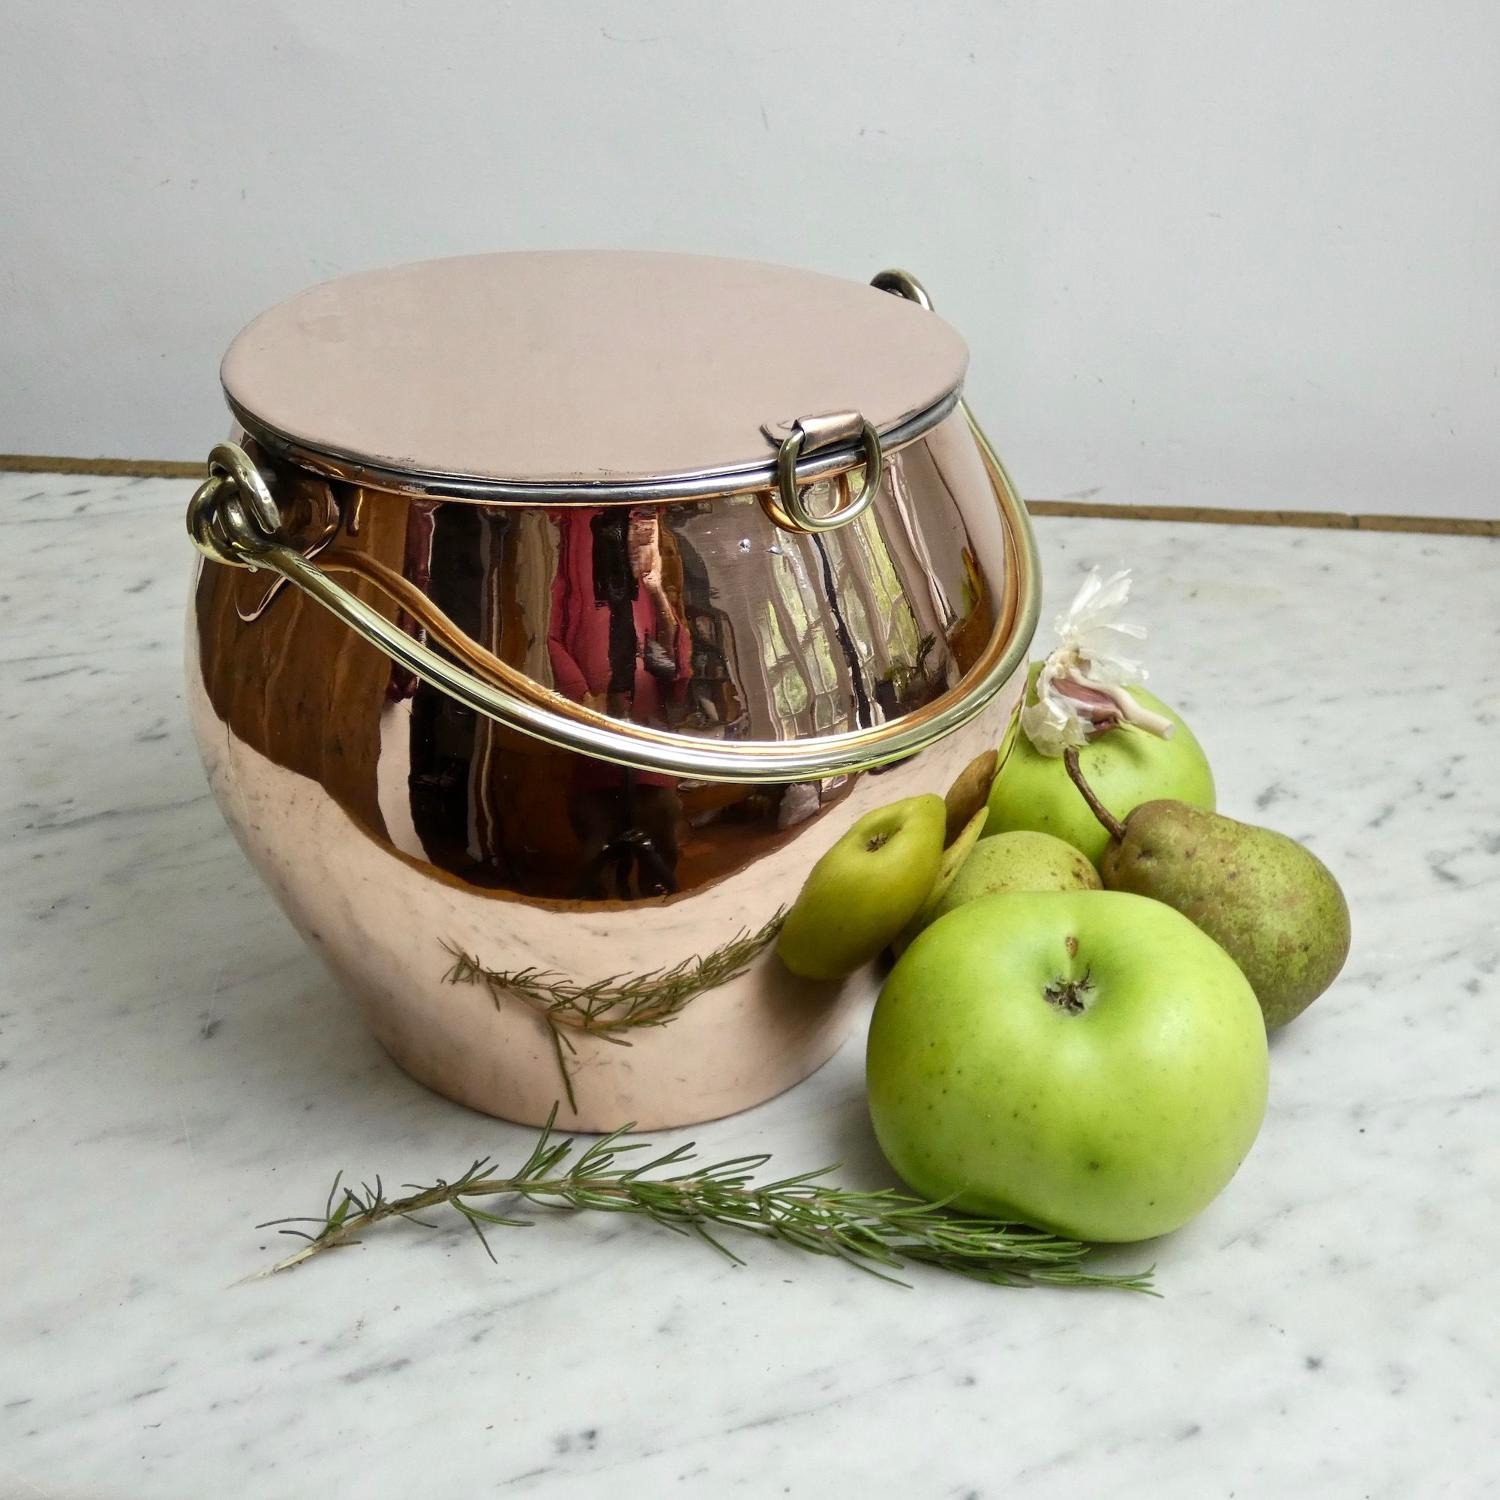 Unusual, French copper casserole